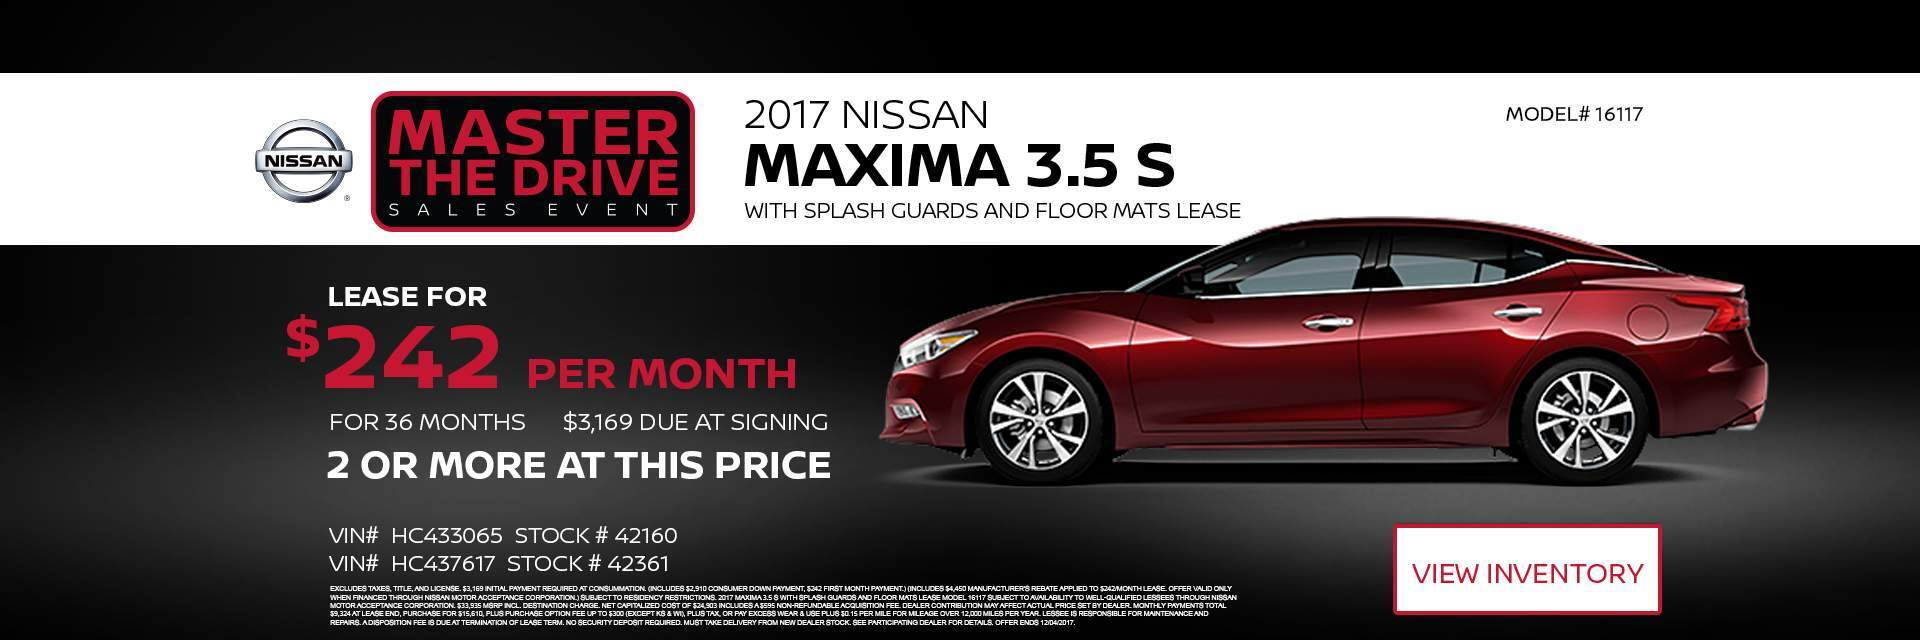 Master the drive 2017 Nissan Maxima 3.5 S